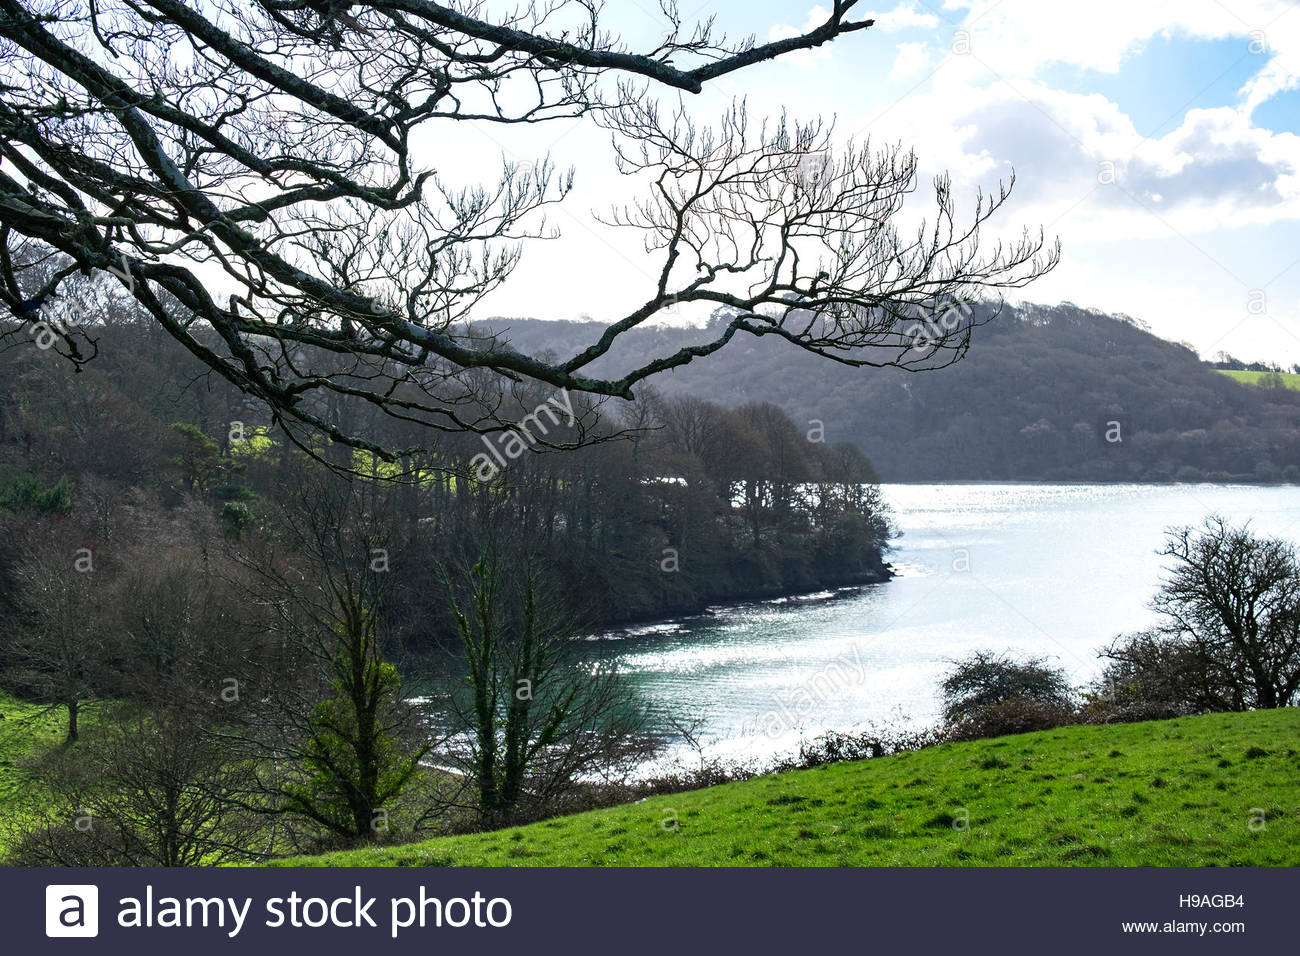 """a view looking towards the """"Carrick Roads"""" on the river Fal in Cornwall, England, UK Stock Photo"""